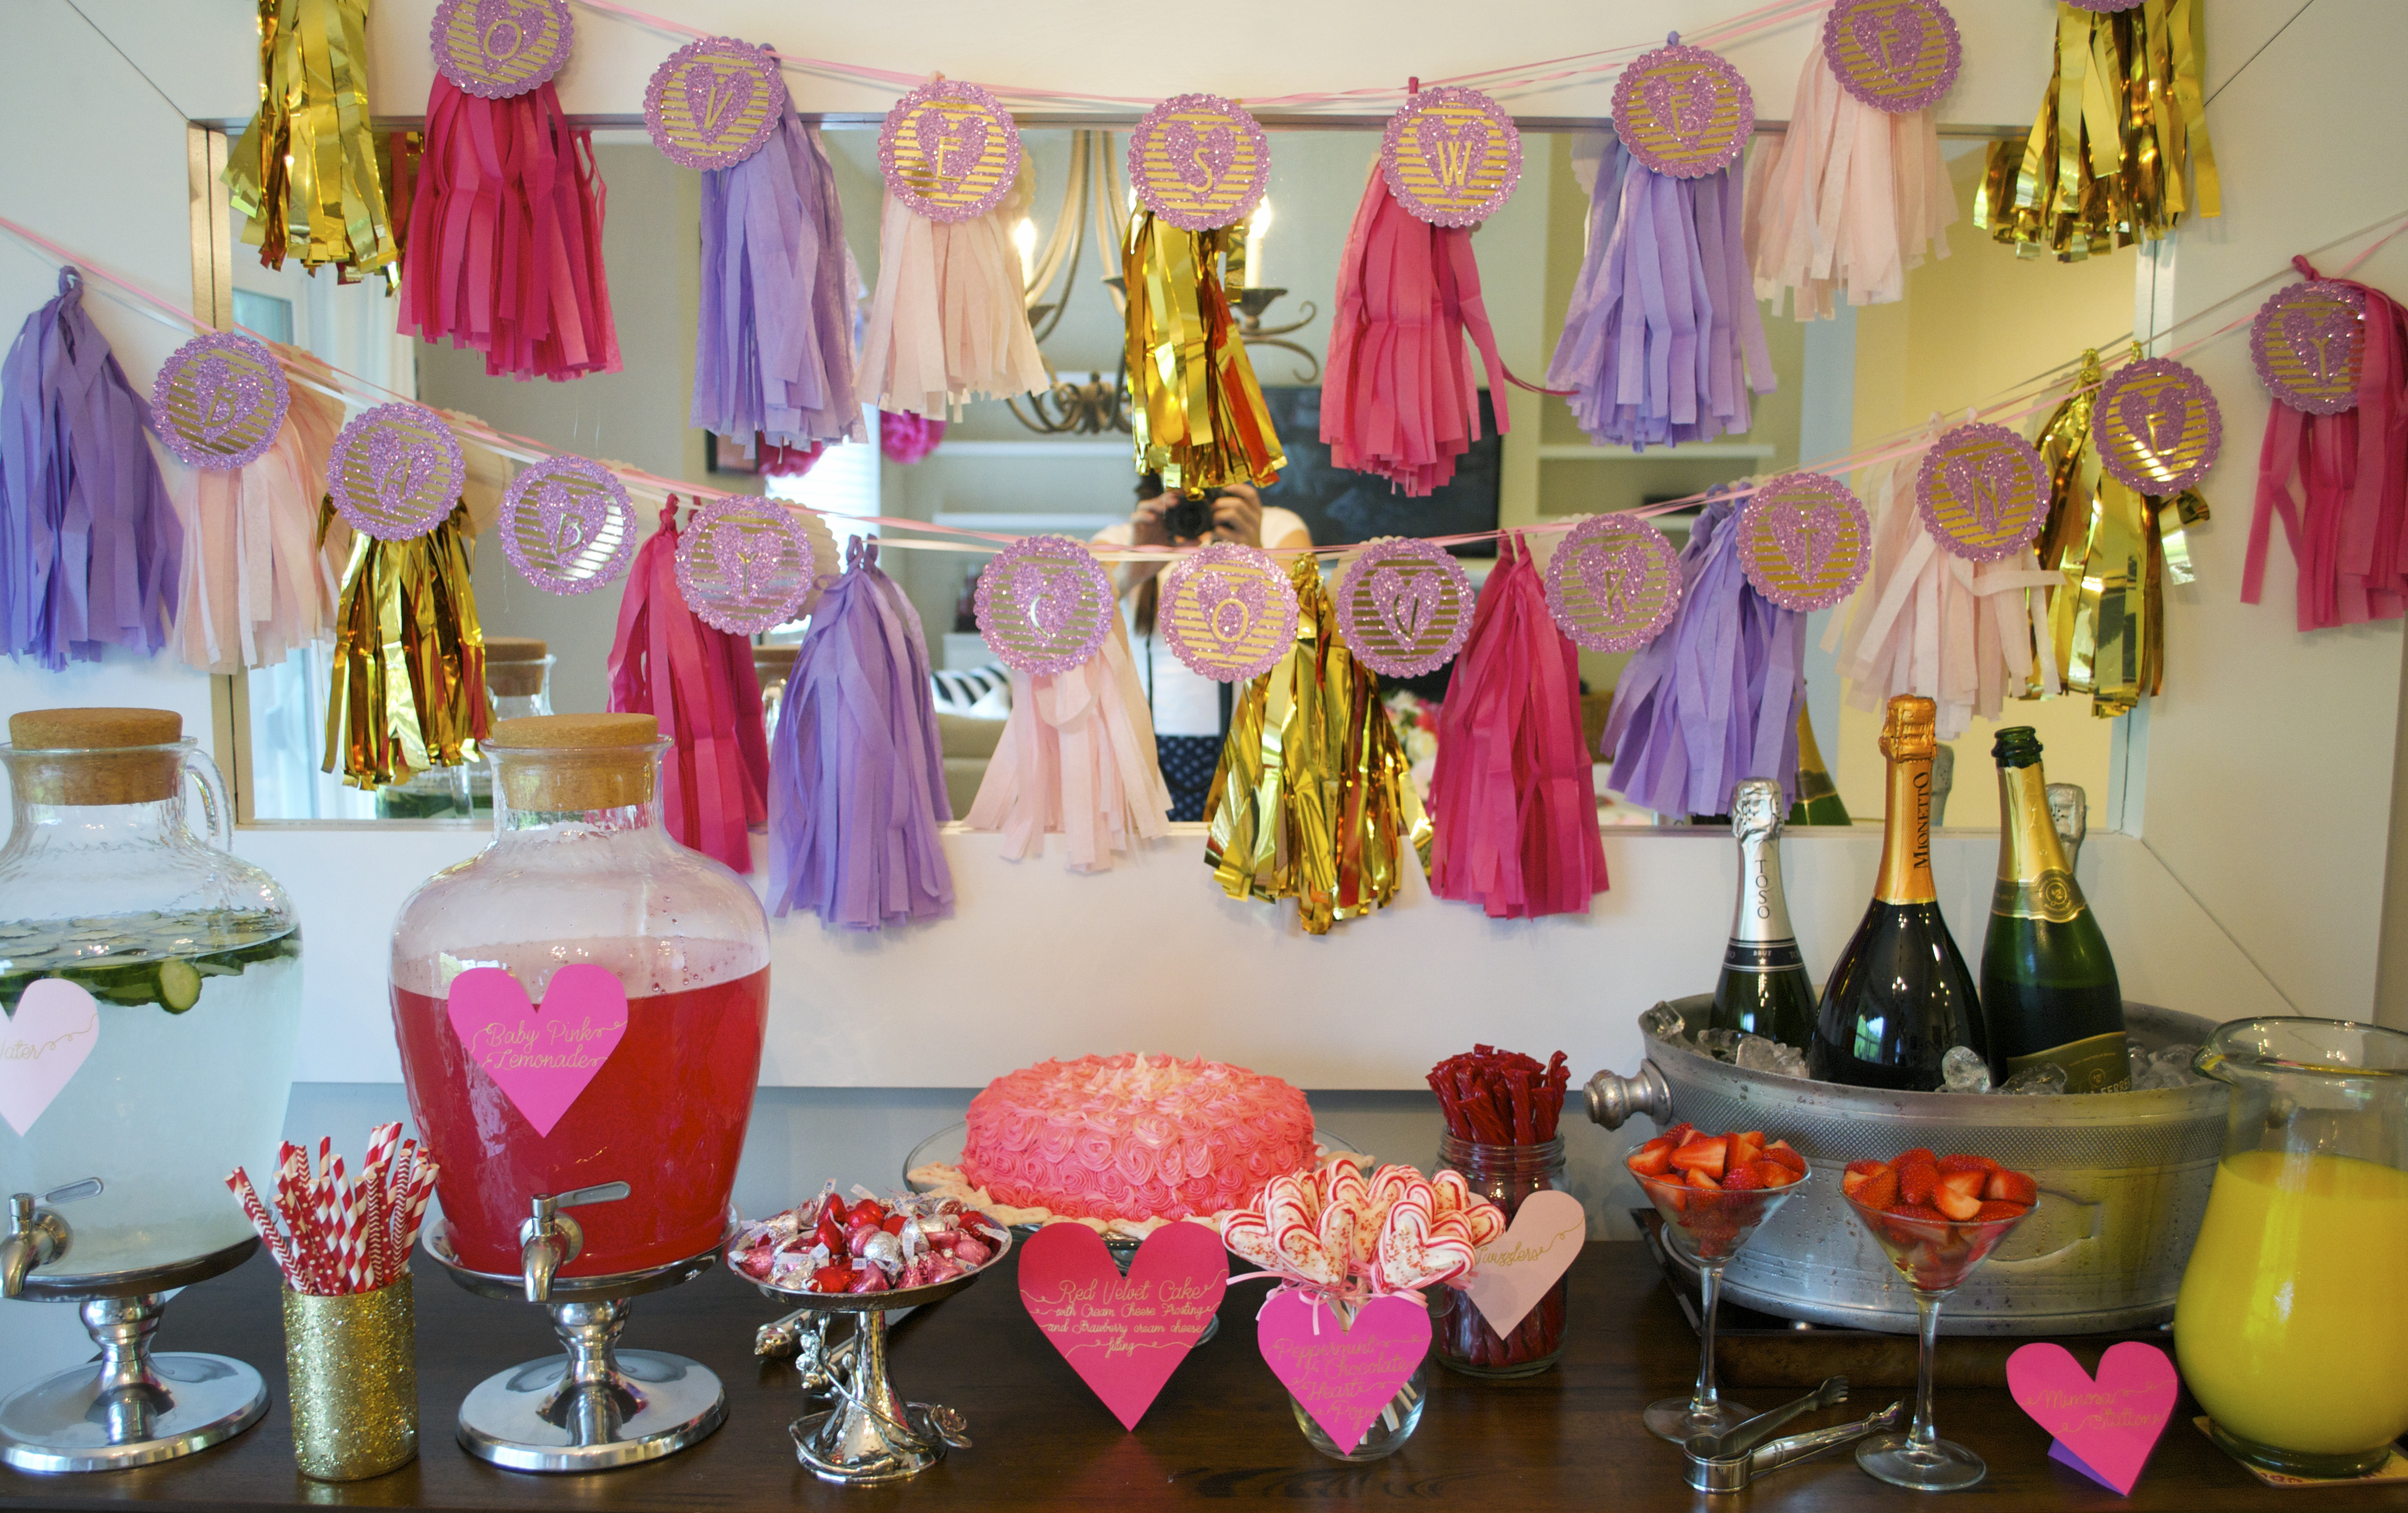 Fabulous How To Make Tissue Paper Pom Poms Fun And Easy Party Home Interior And Landscaping Ologienasavecom